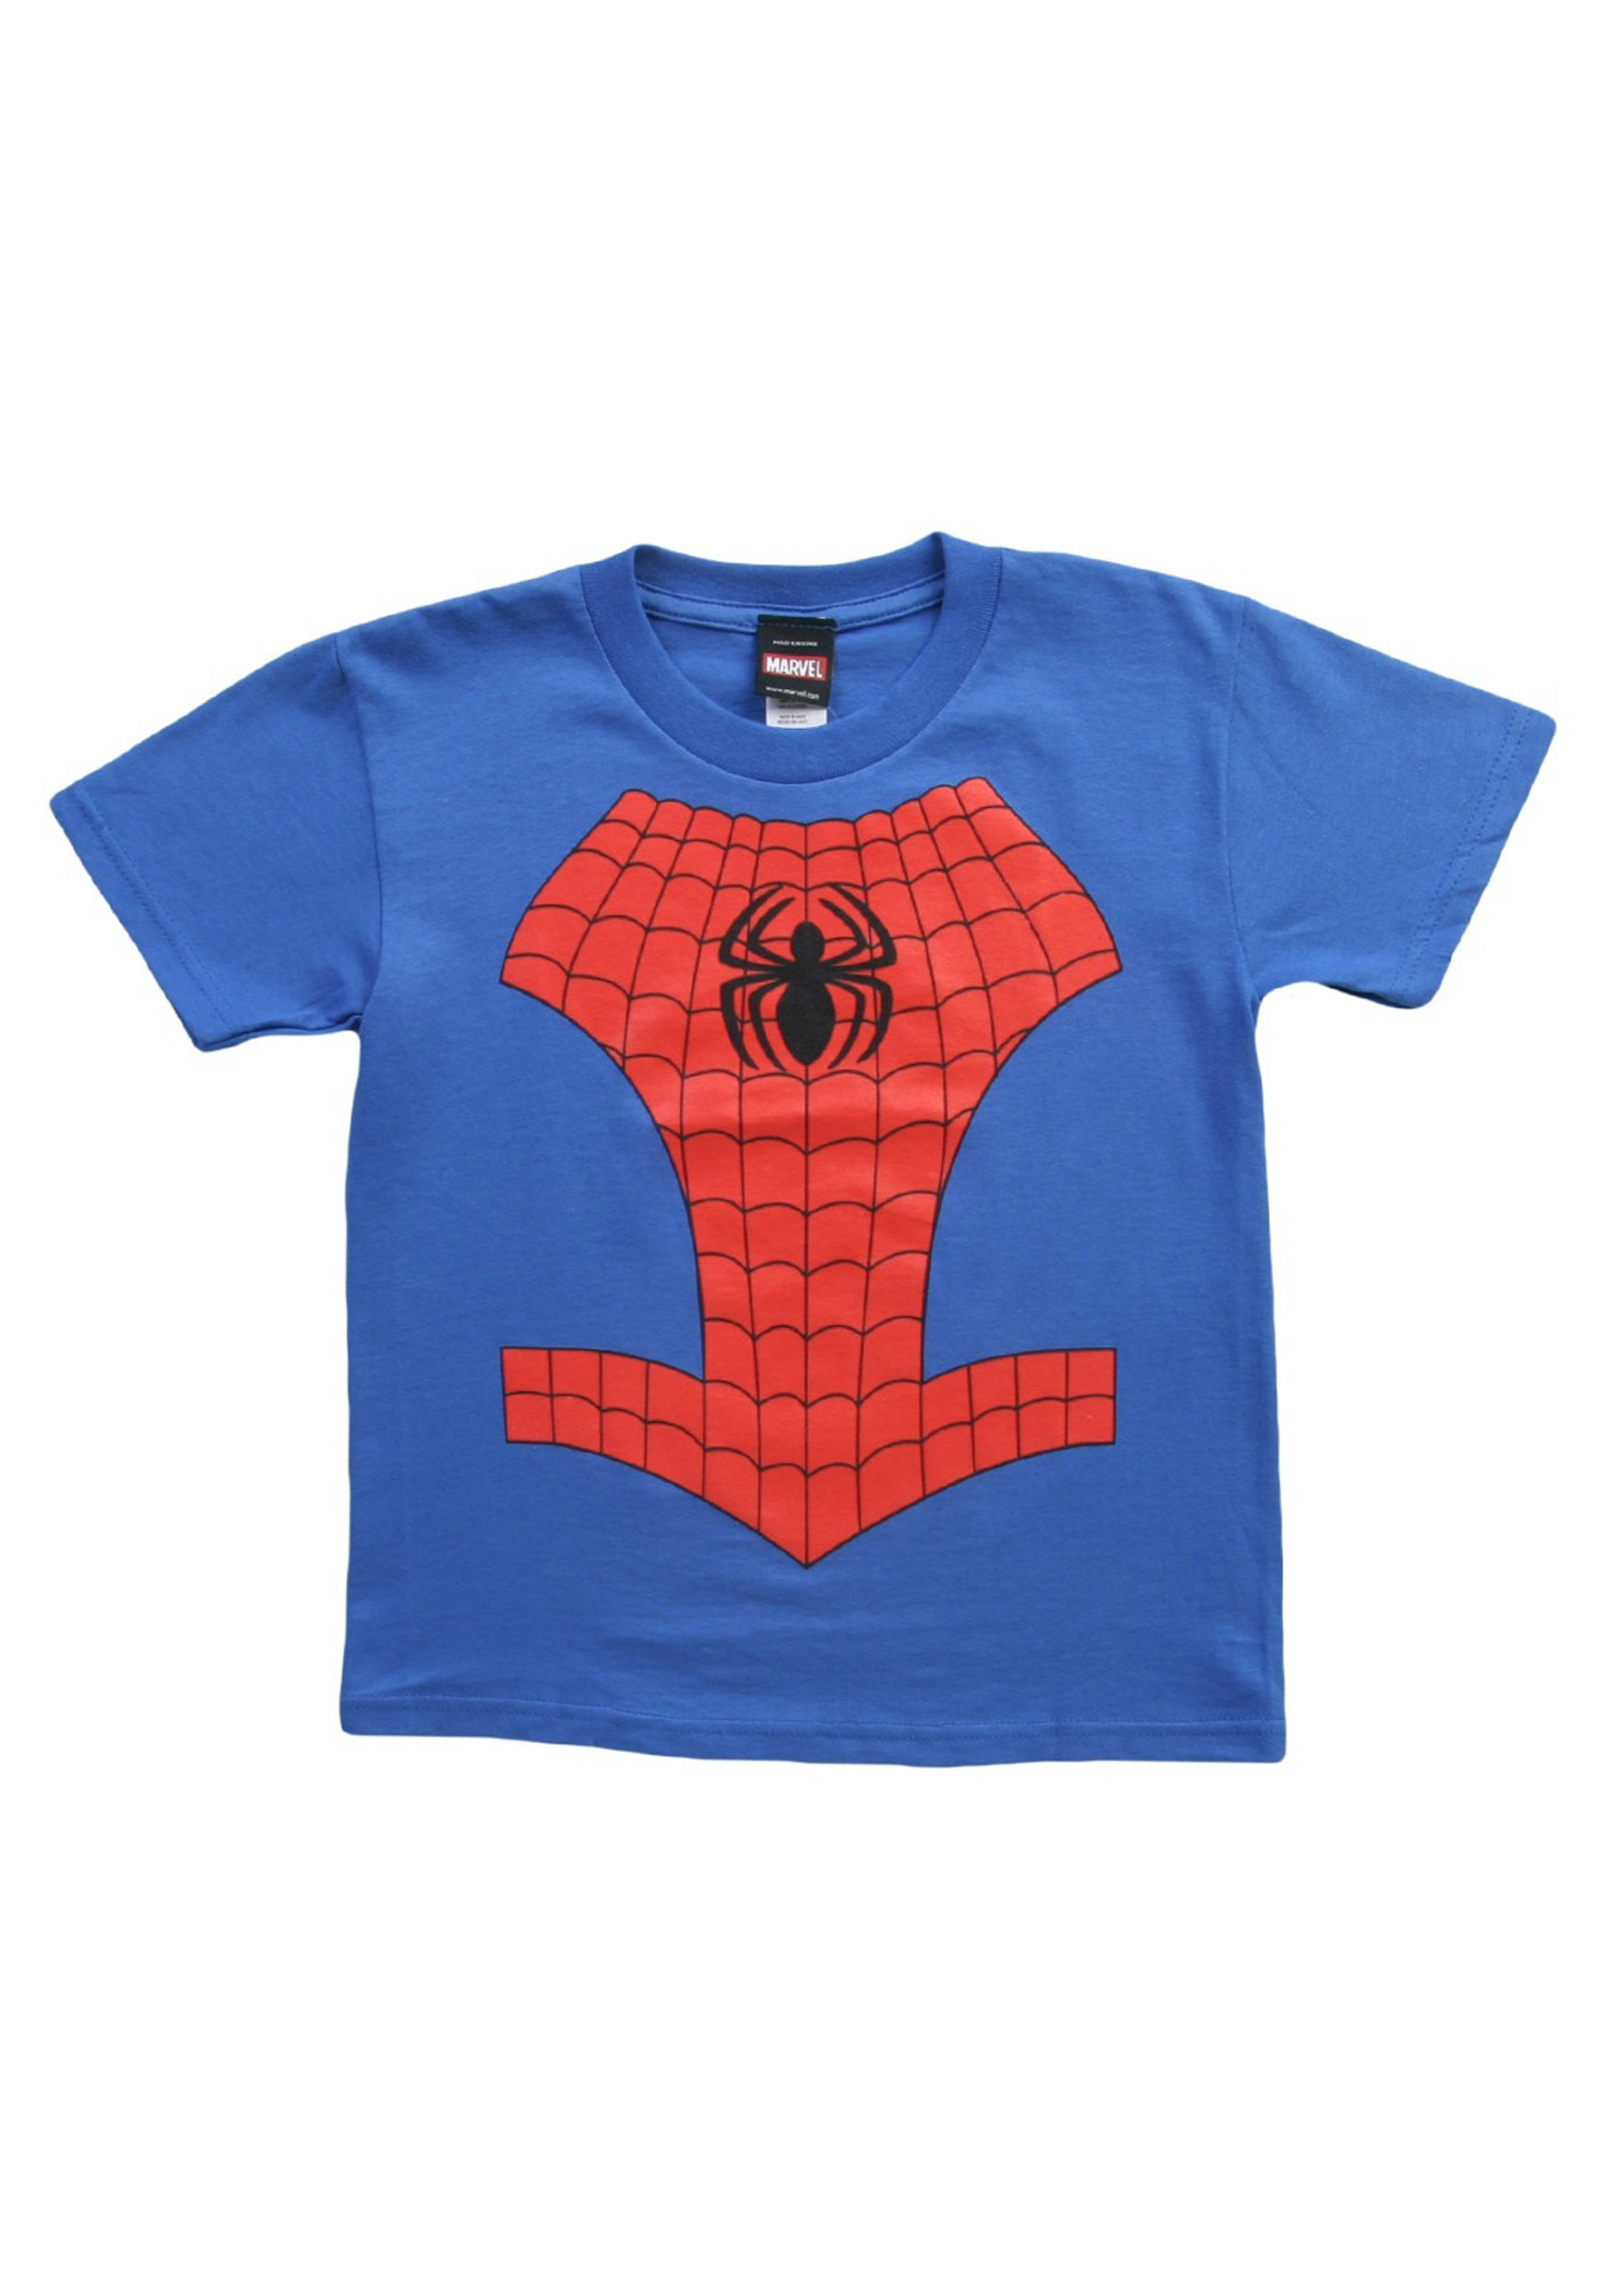 Juvy Classic Spider-Man Costume TShirt